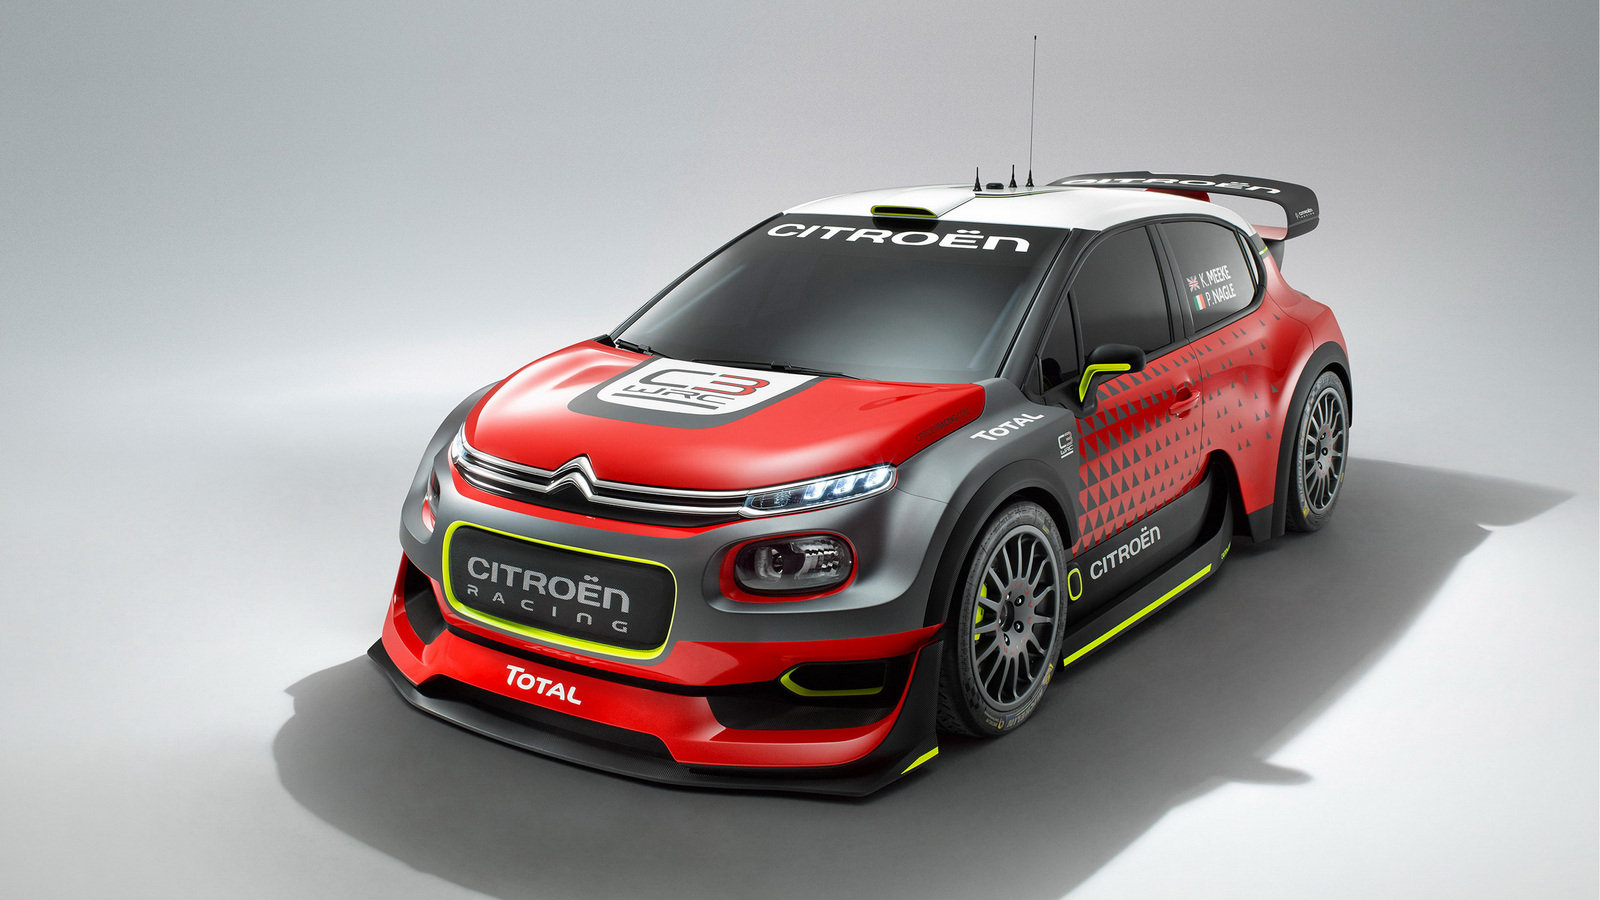 2017 citroen c3 wrc concept car picture 688842 car. Black Bedroom Furniture Sets. Home Design Ideas